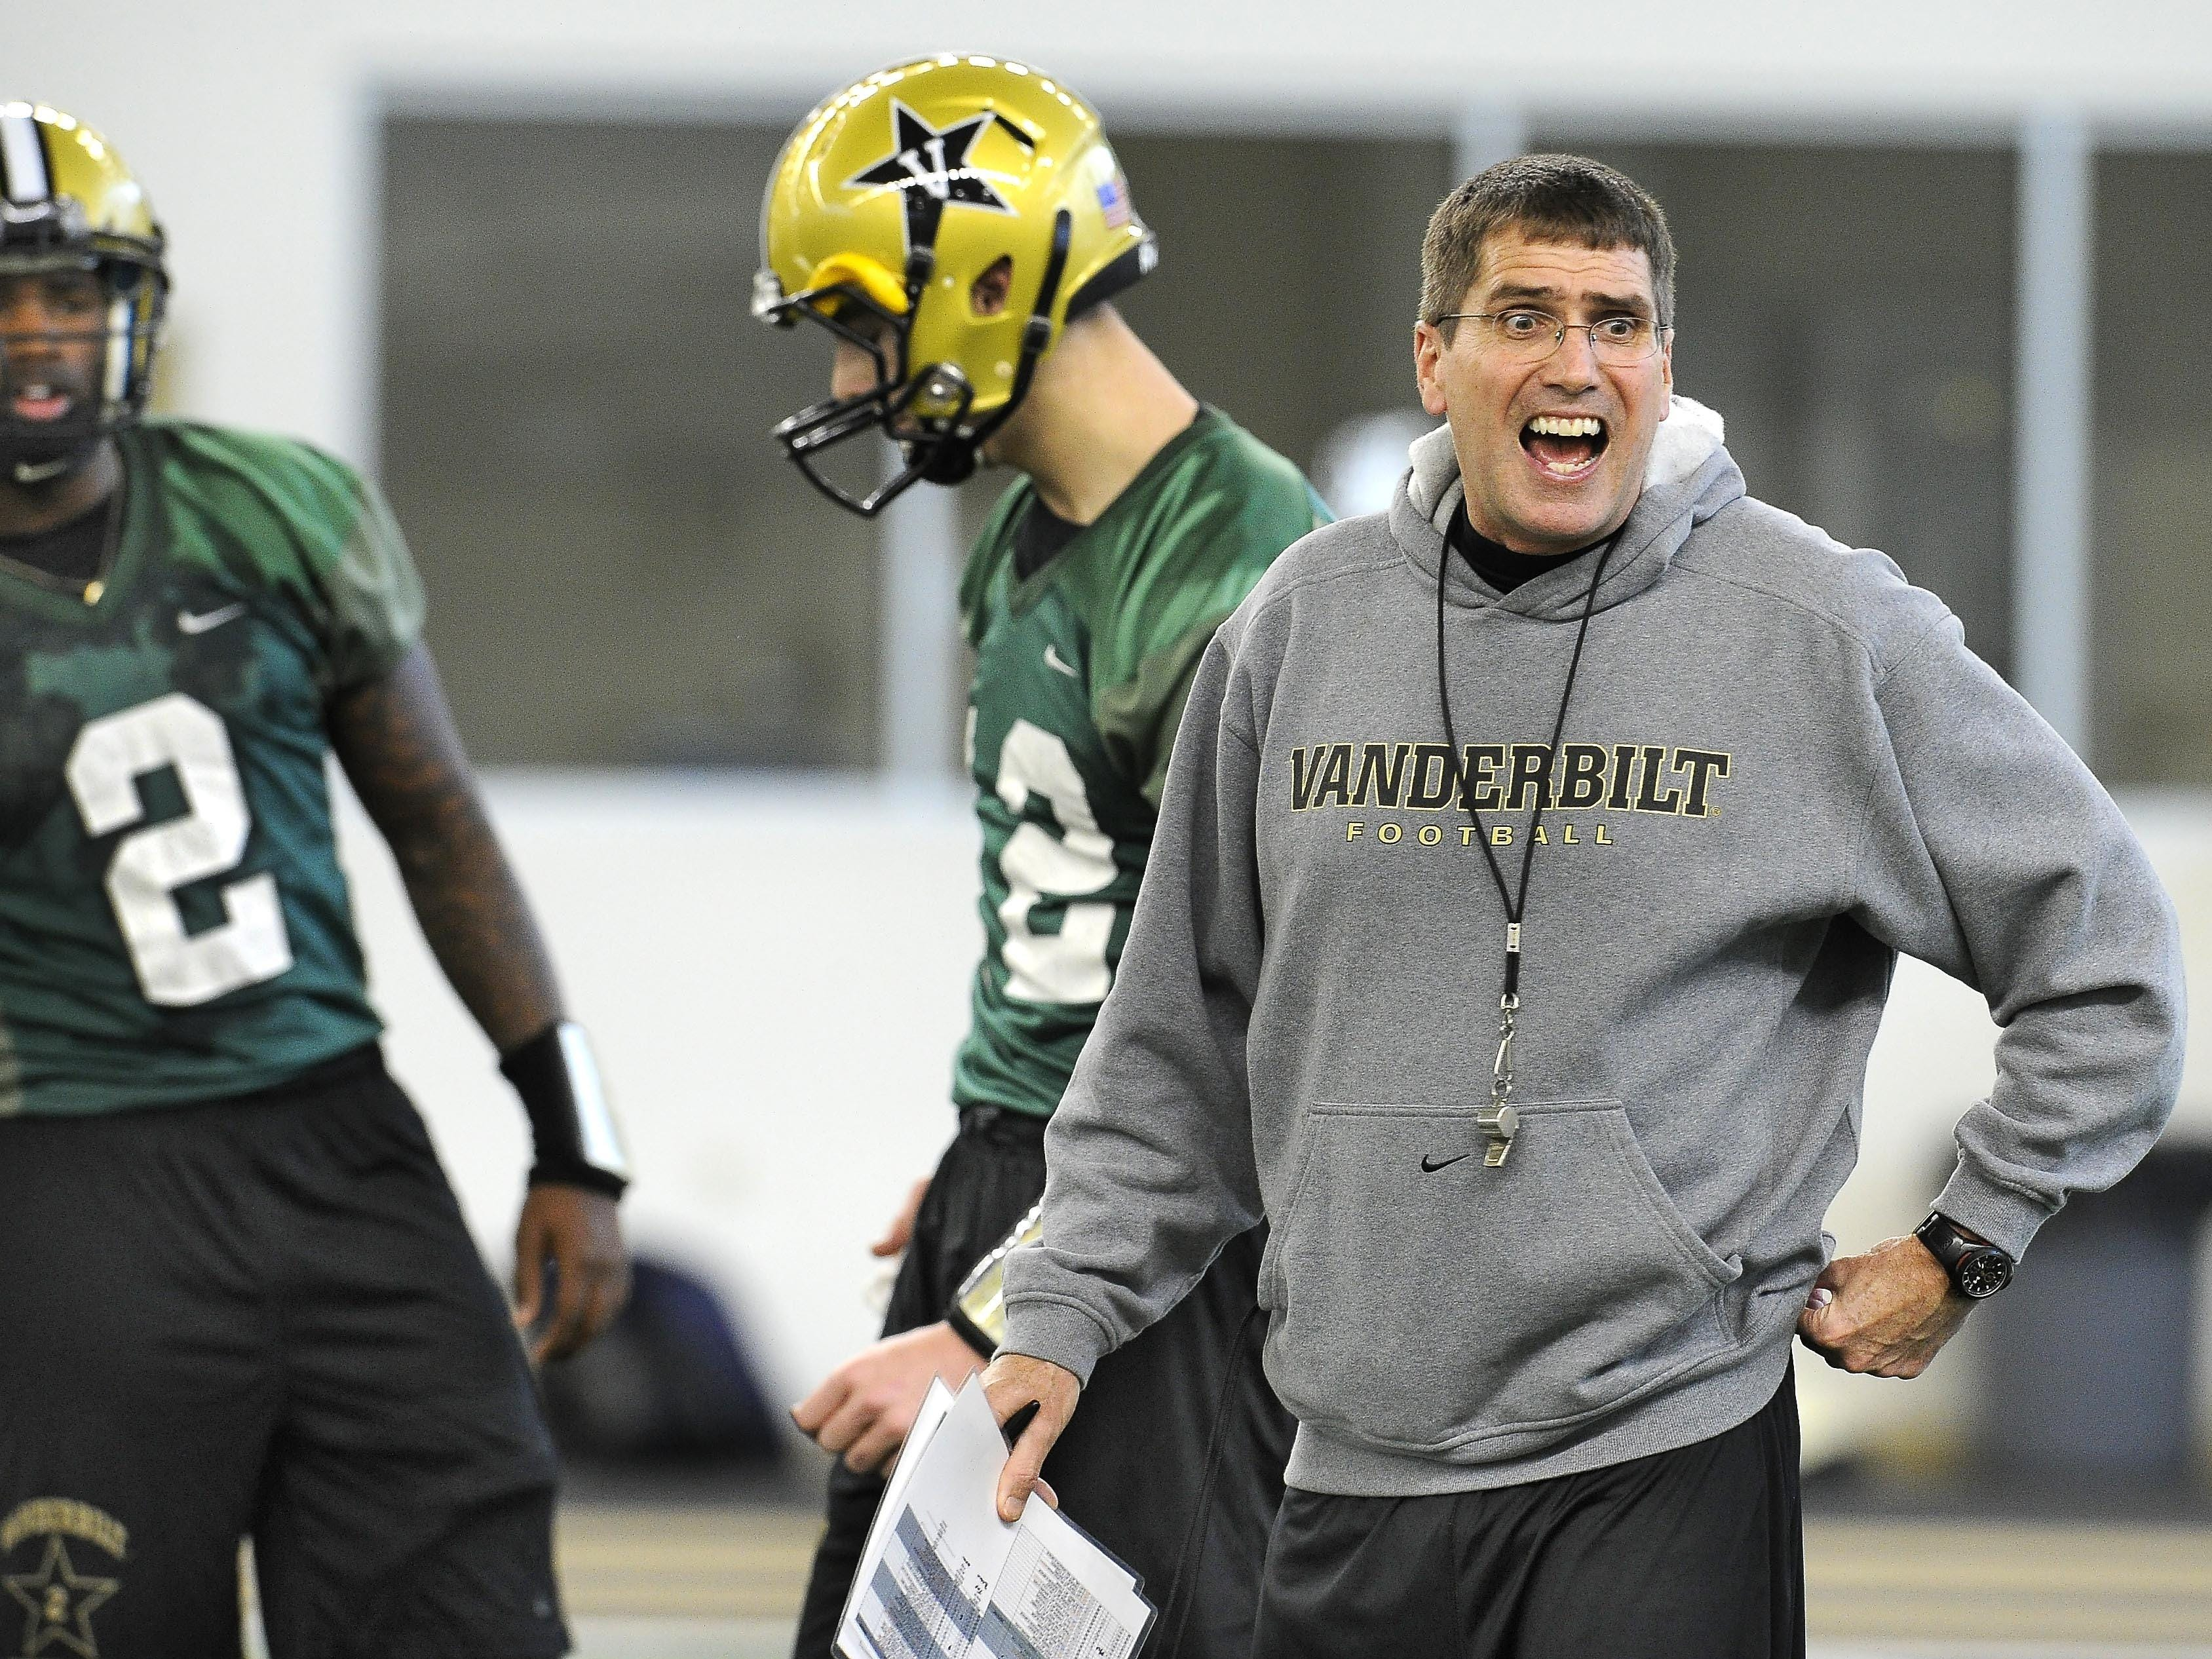 New Vanderbilt offensive coordinator Andy Ludwig will debut for the Commodores against Western Kentucky Thursday night.